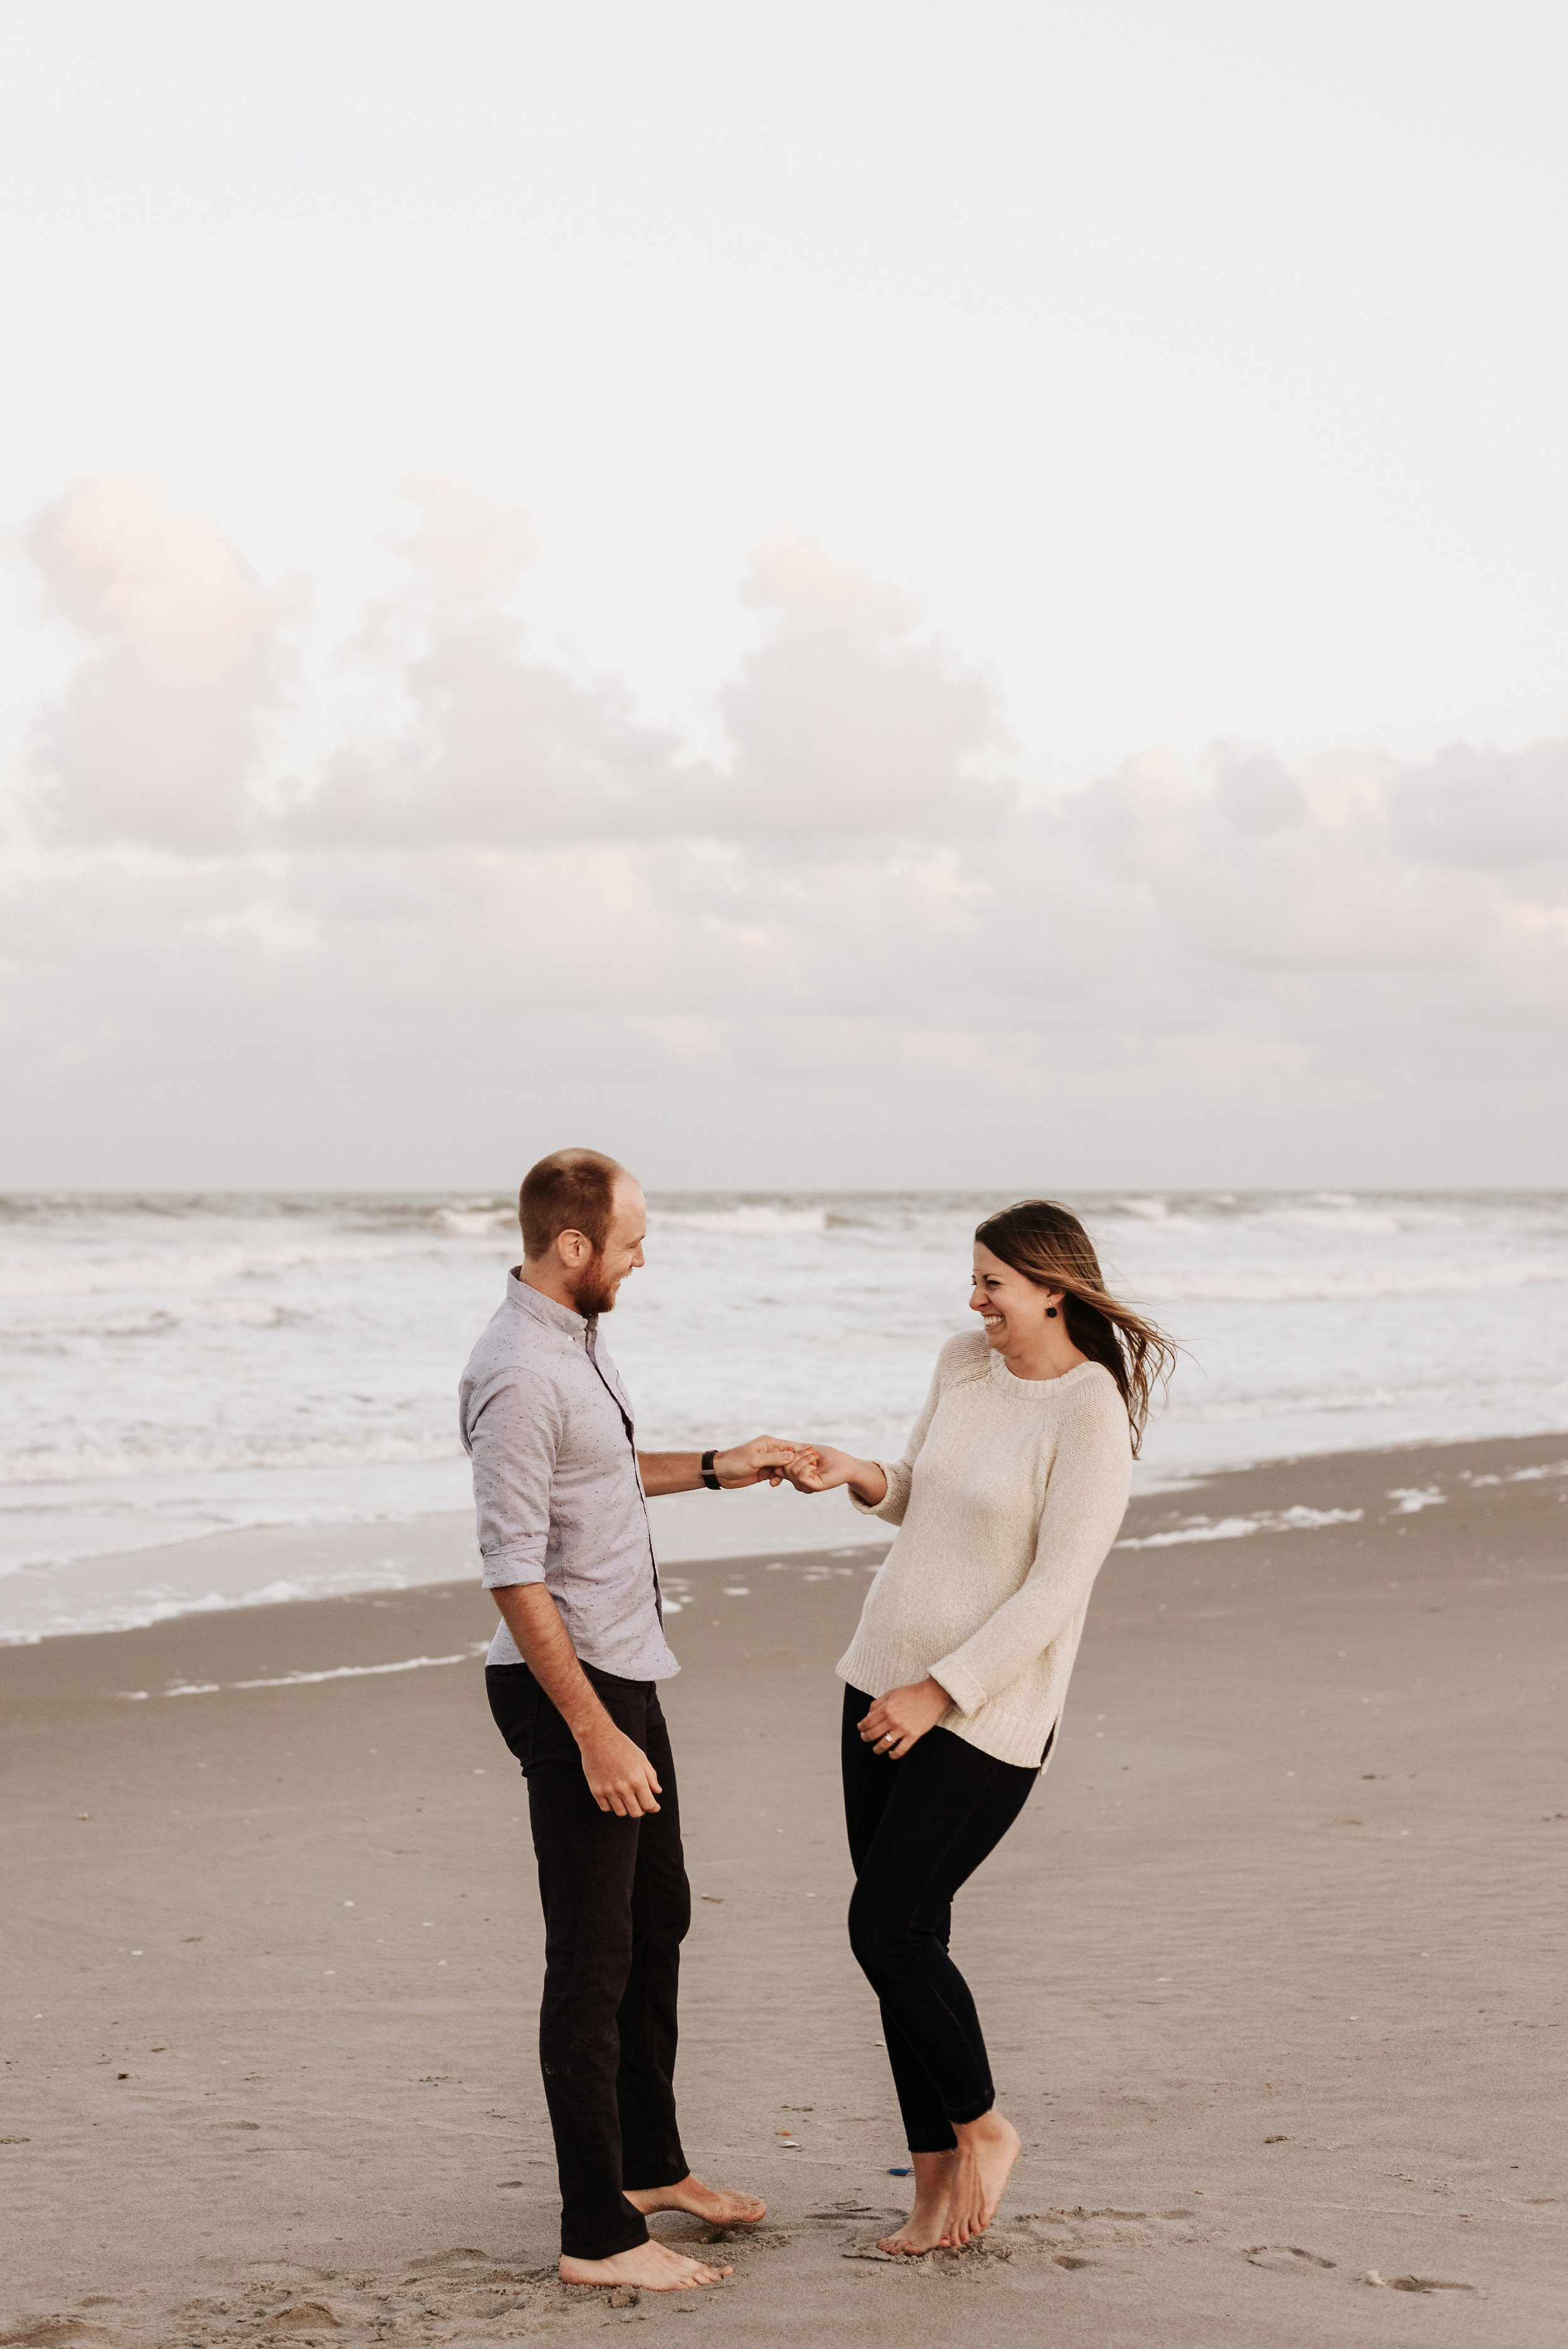 Courtney_Luke_Wedding_Engagement_Session_Cocoa_Beach_Florida_Photography_by_V_4887.jpg